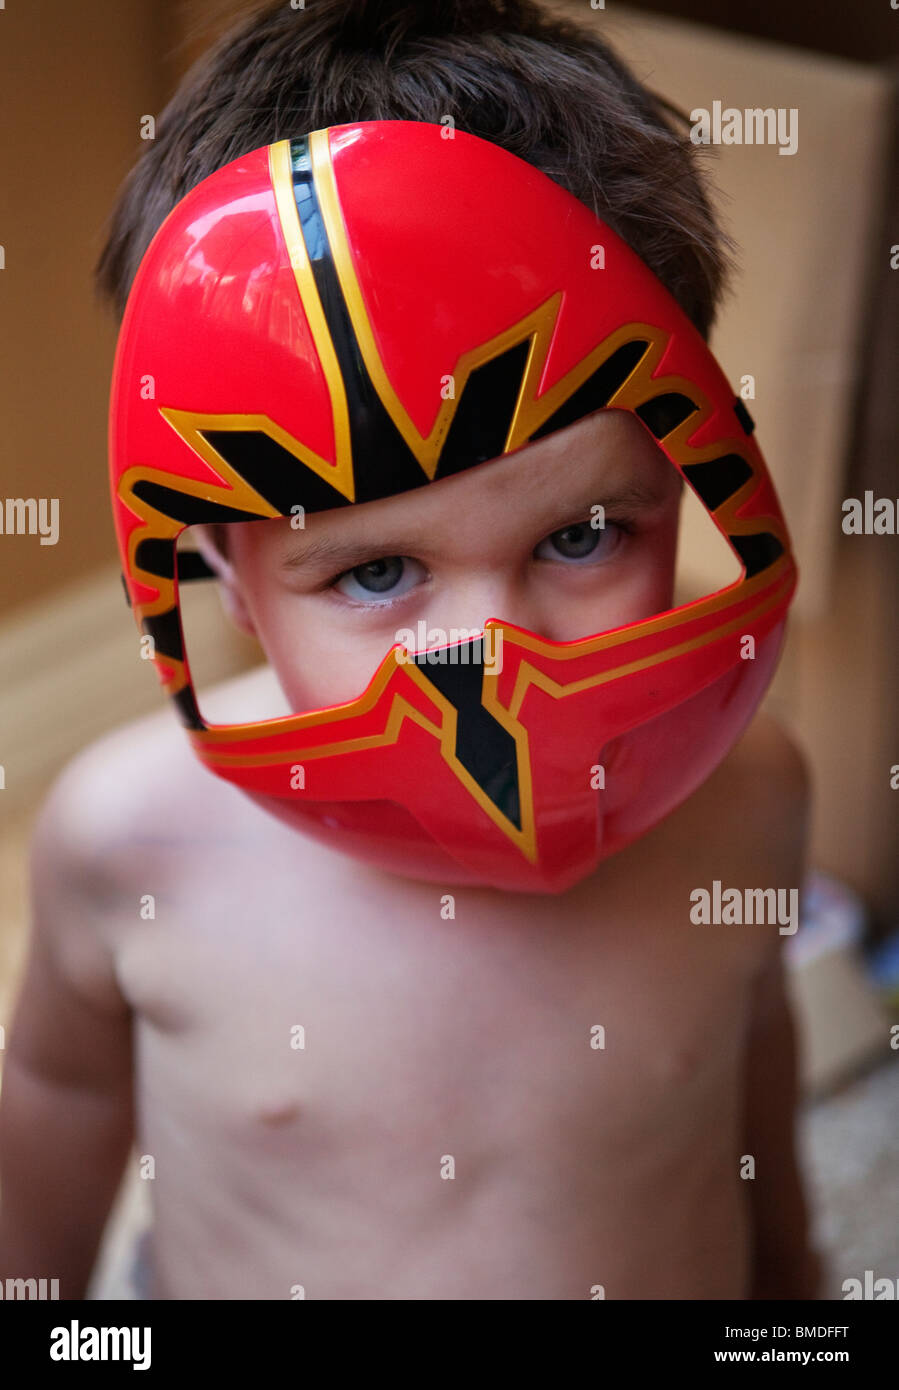 Young boy in super hero mask - Stock Image